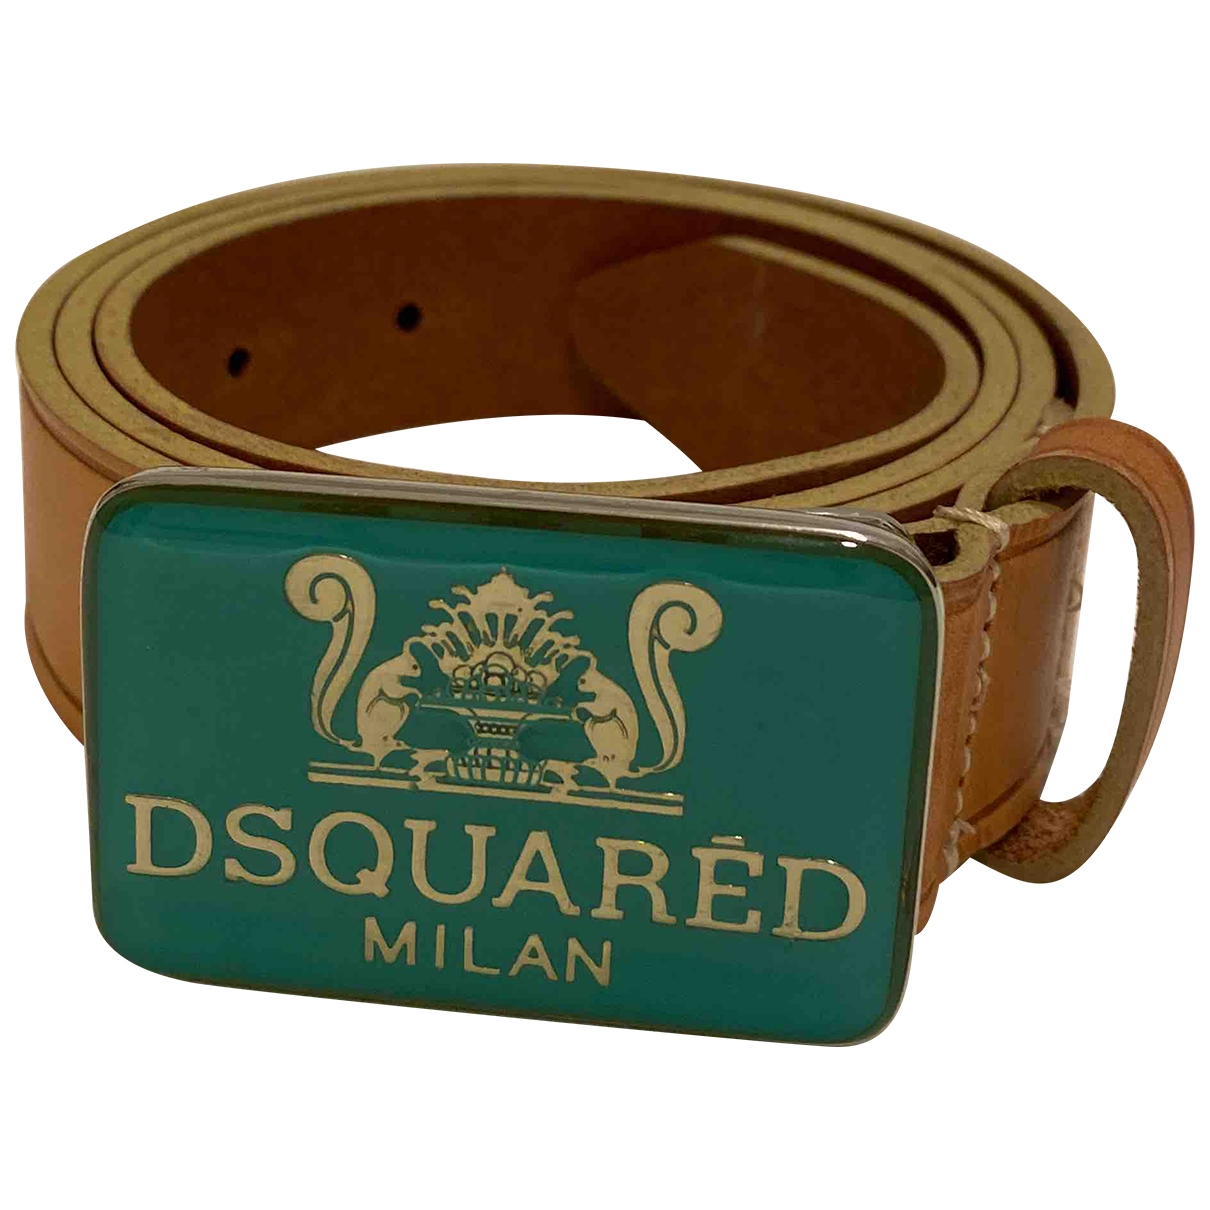 Dsquared2 \N Beige Leather belt for Women S International